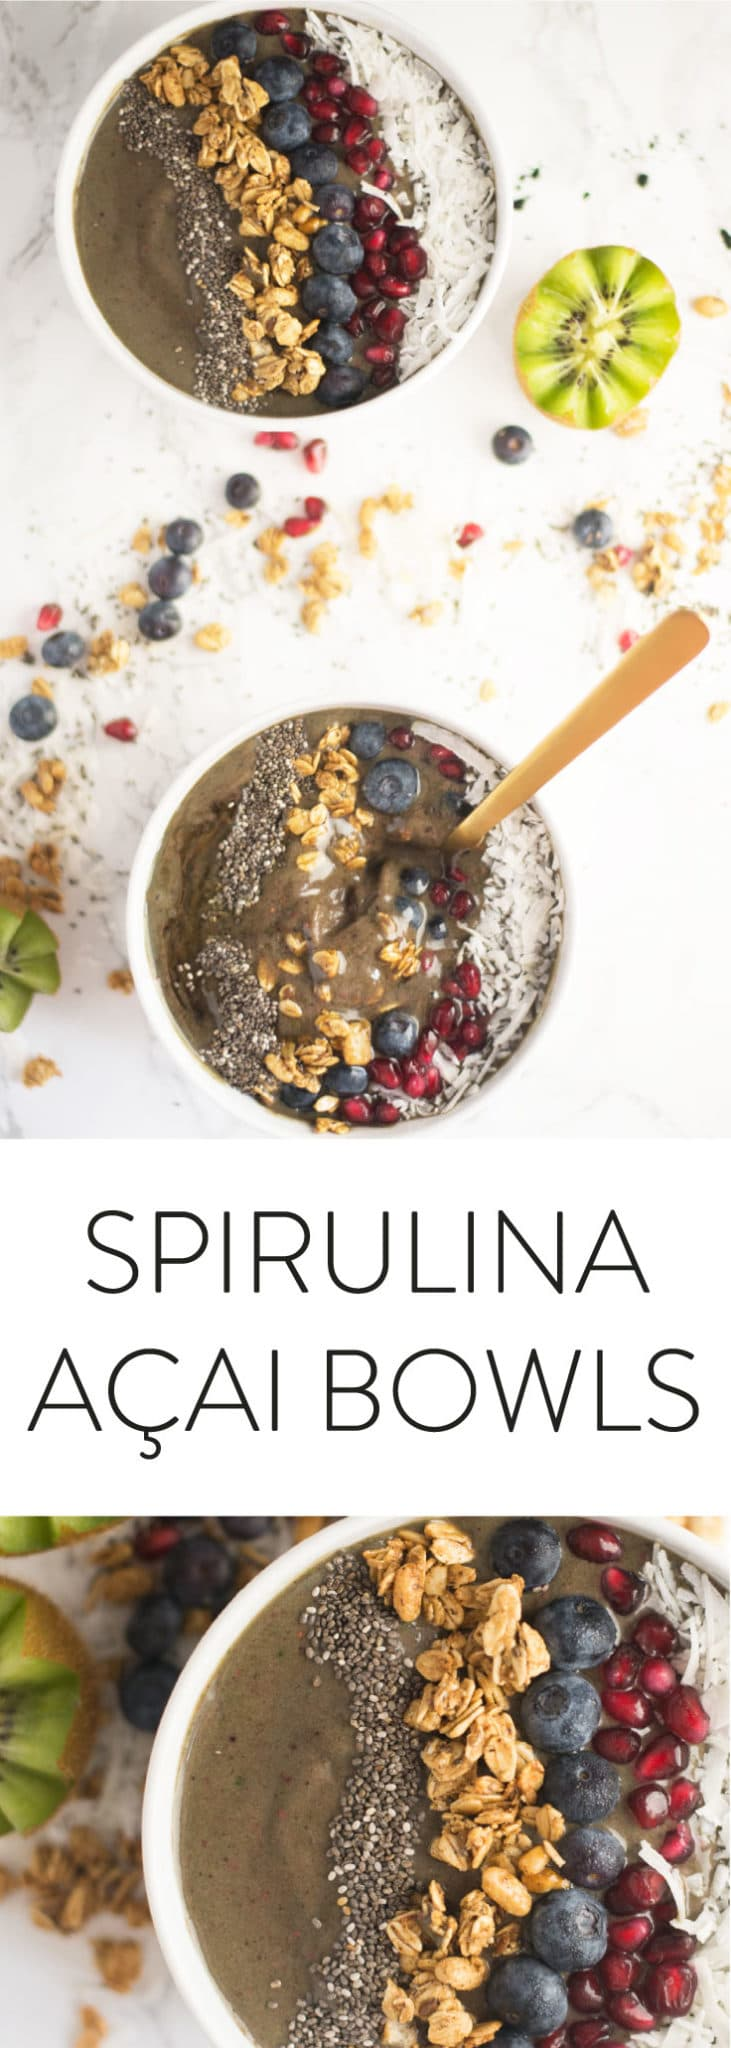 Spirulina Acai Bowl -- Whip up this smoothie bowl in a matter of minutes! Packed with superfoods and detoxifying ingredients, this vegan gluten free breakfast is the best way to start your morning. | mindfulavocado